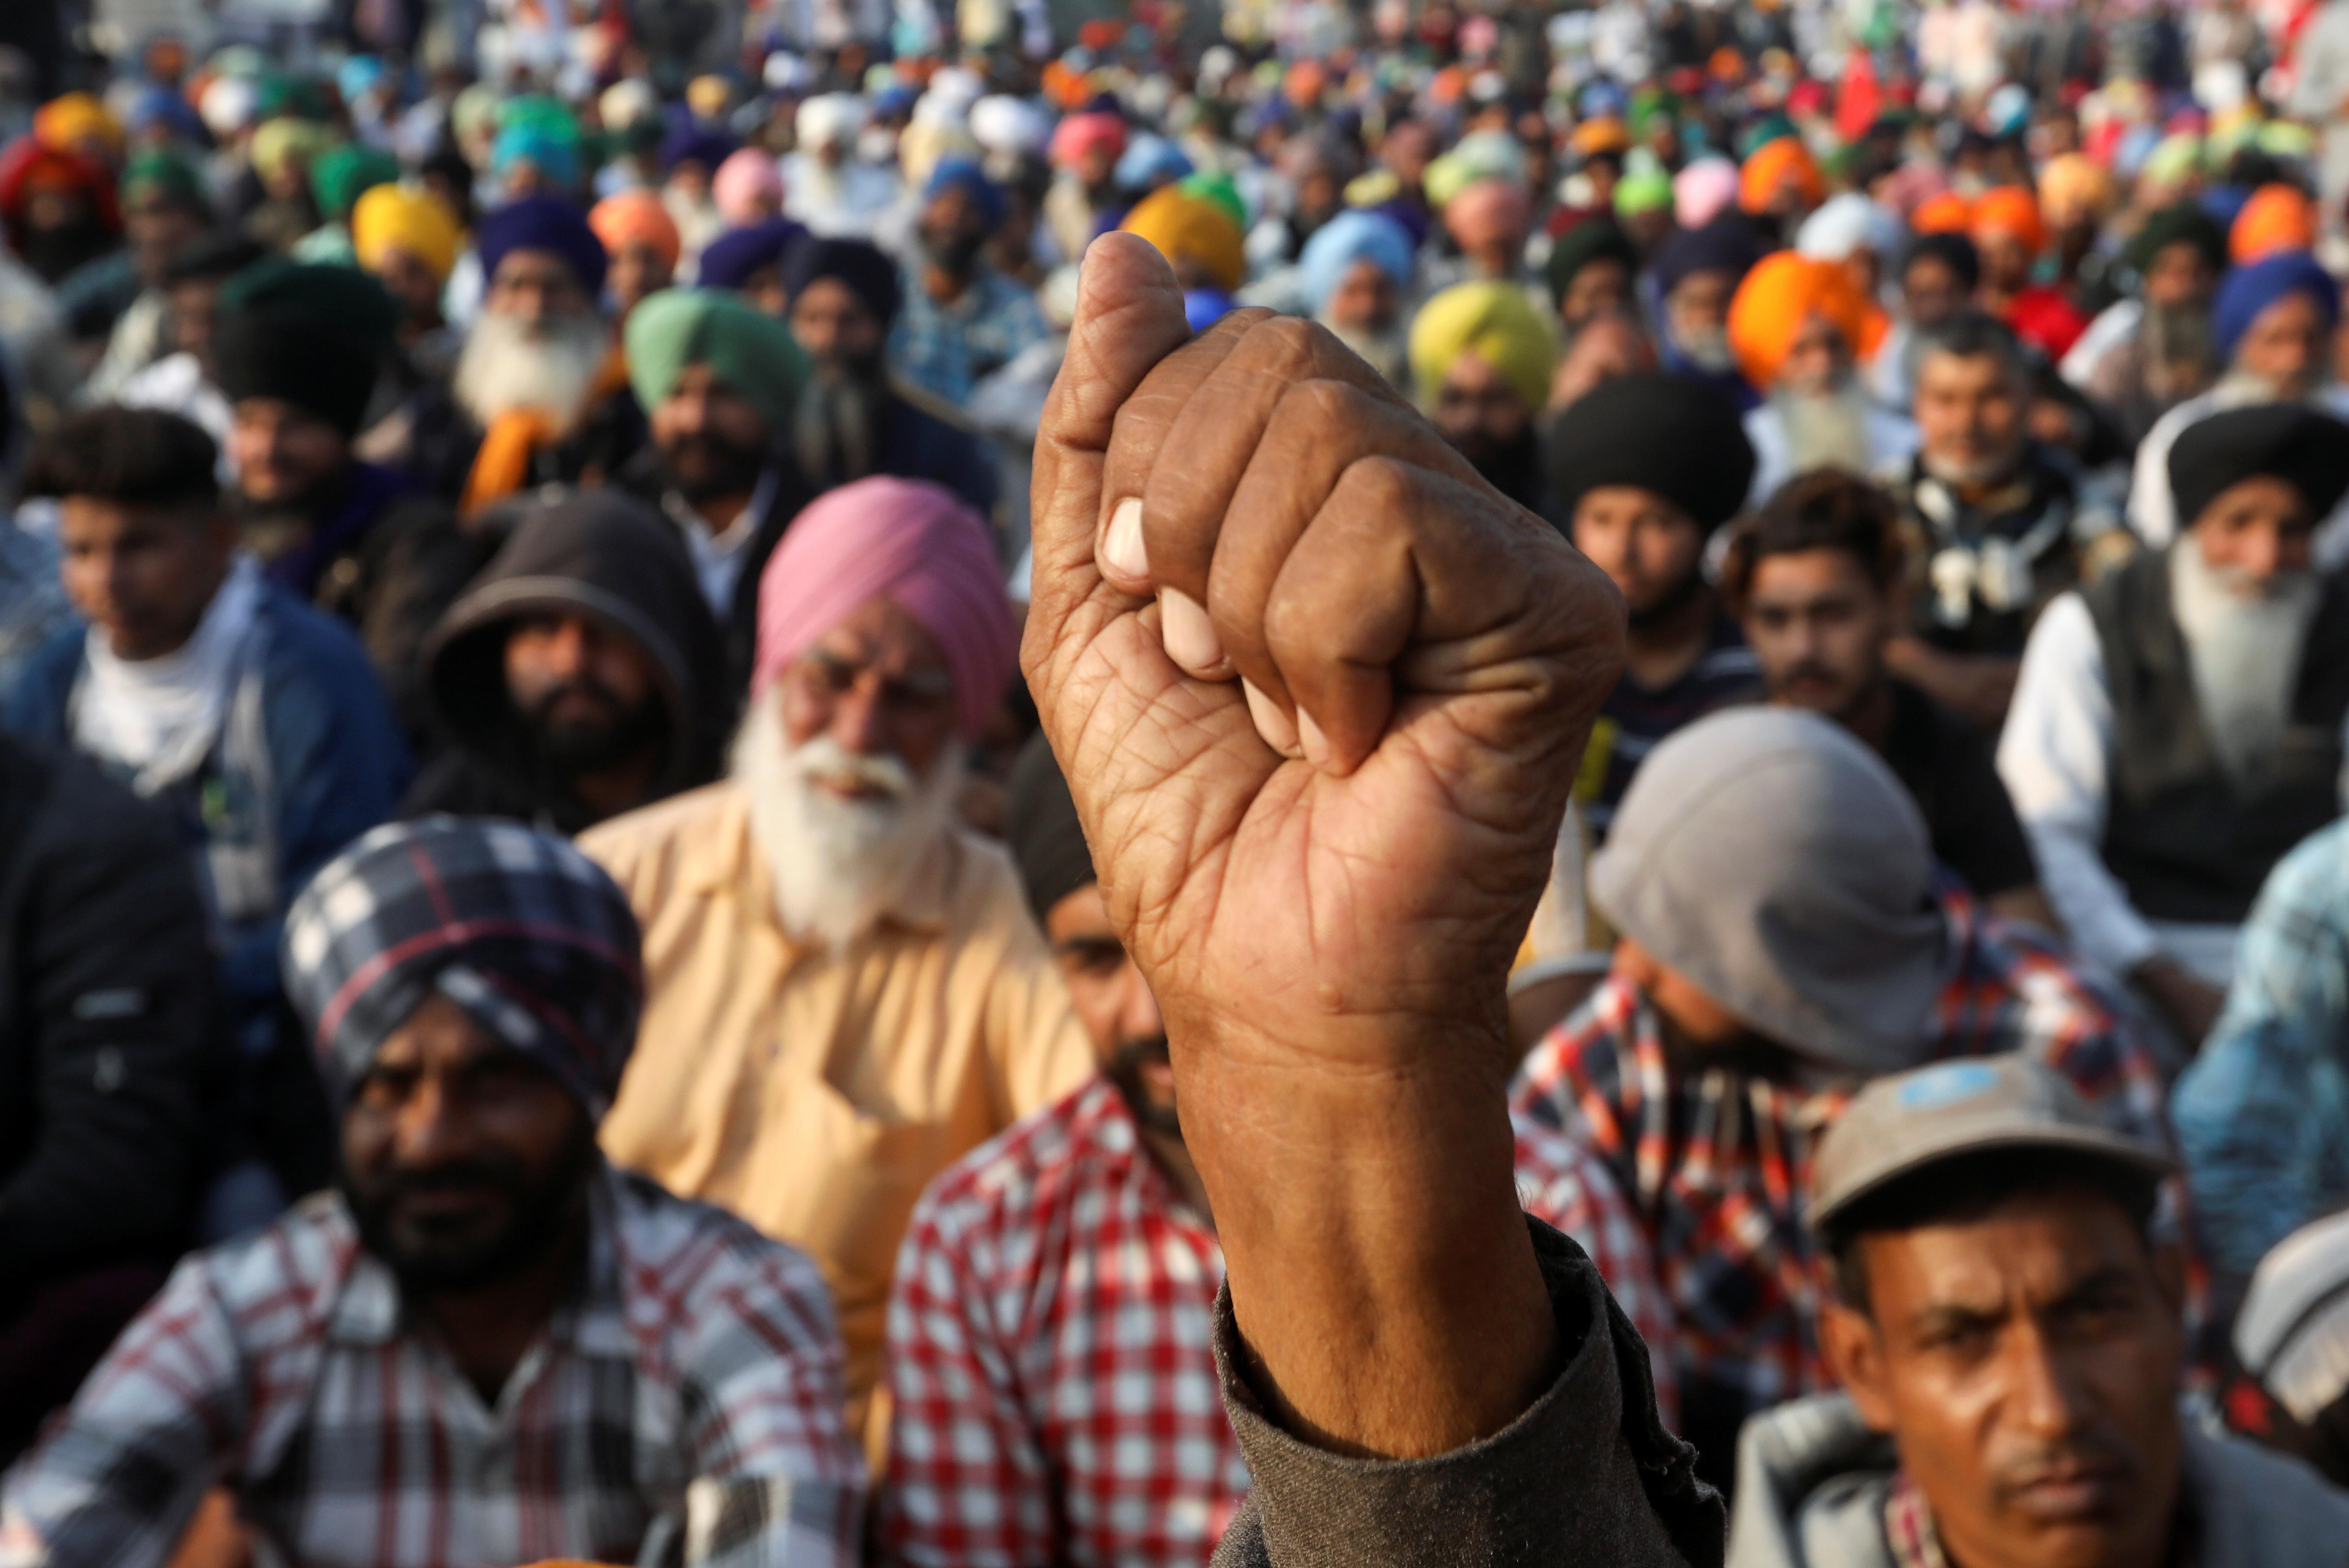 A demonstrator gestures during a protest against the newly passed farm bills at Singhu border near New Delhi, India, December 10, 2020. Photo: Reuters